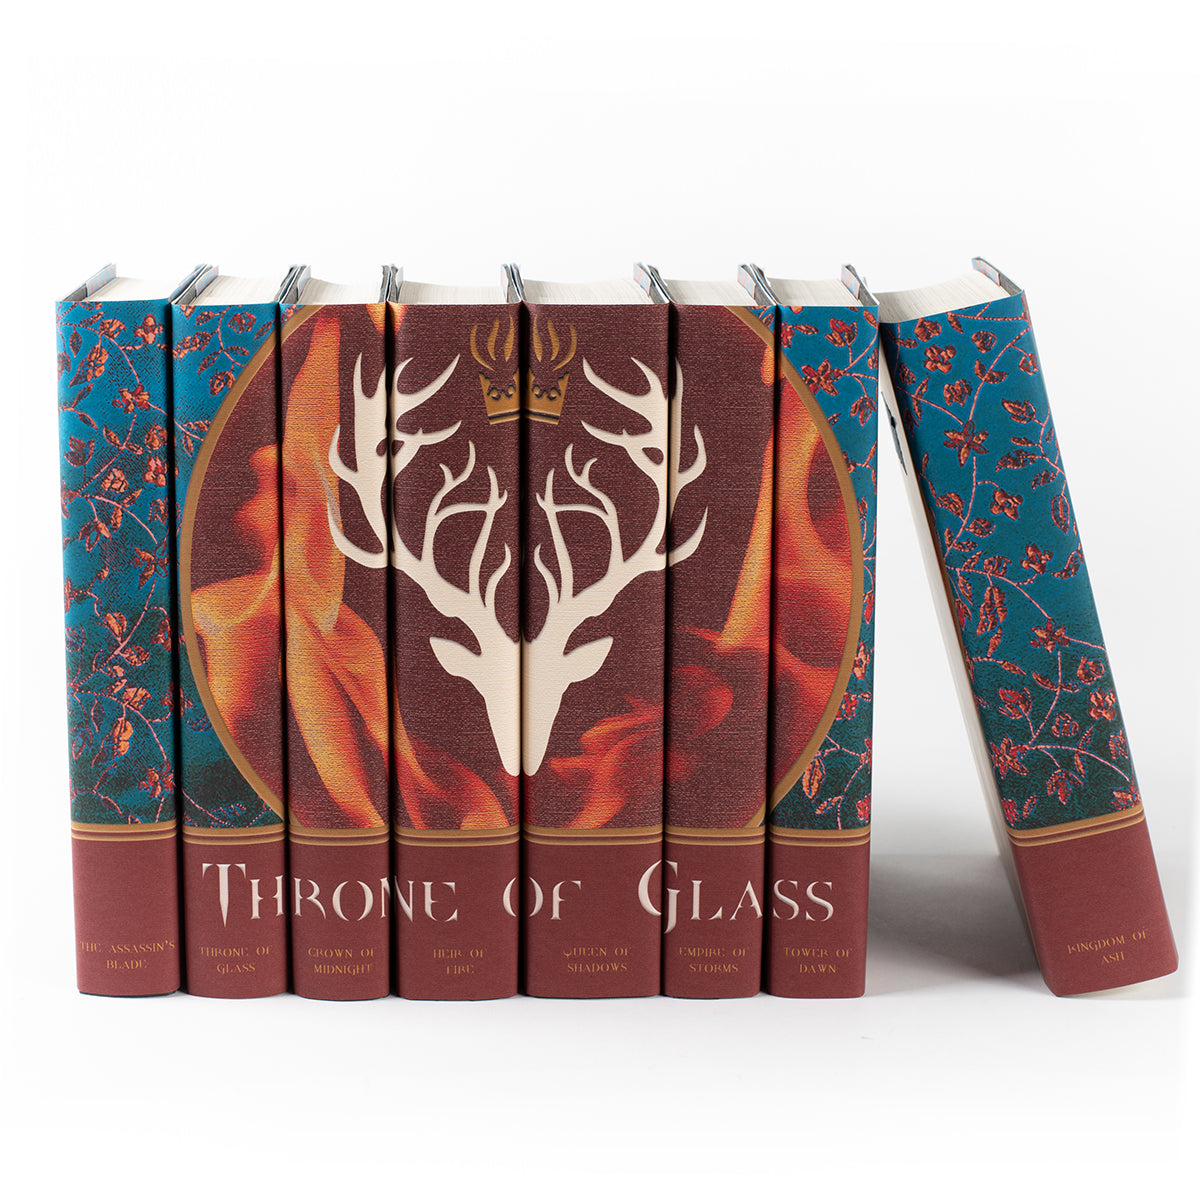 Throne of Glass Set